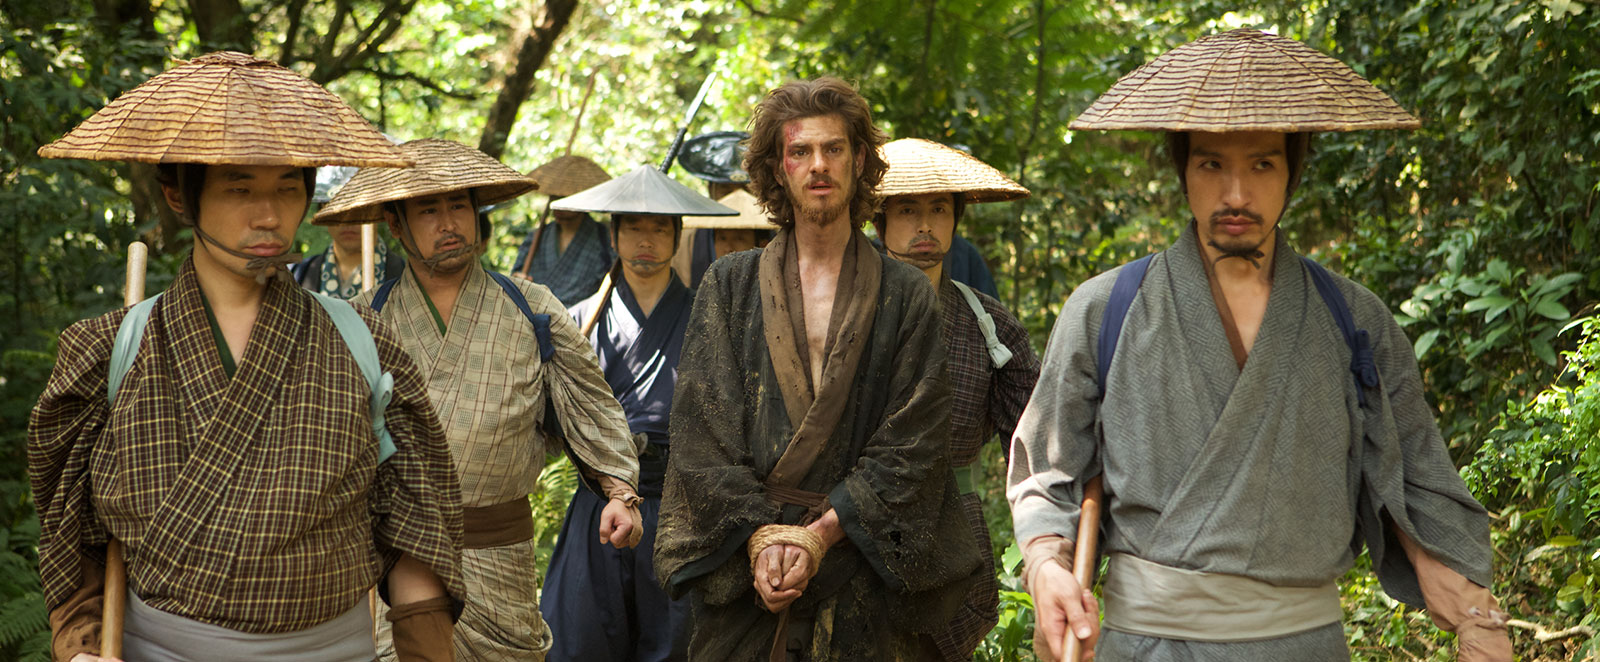 Faith, Culture, Politics, Come Together in Scorsese's Silence